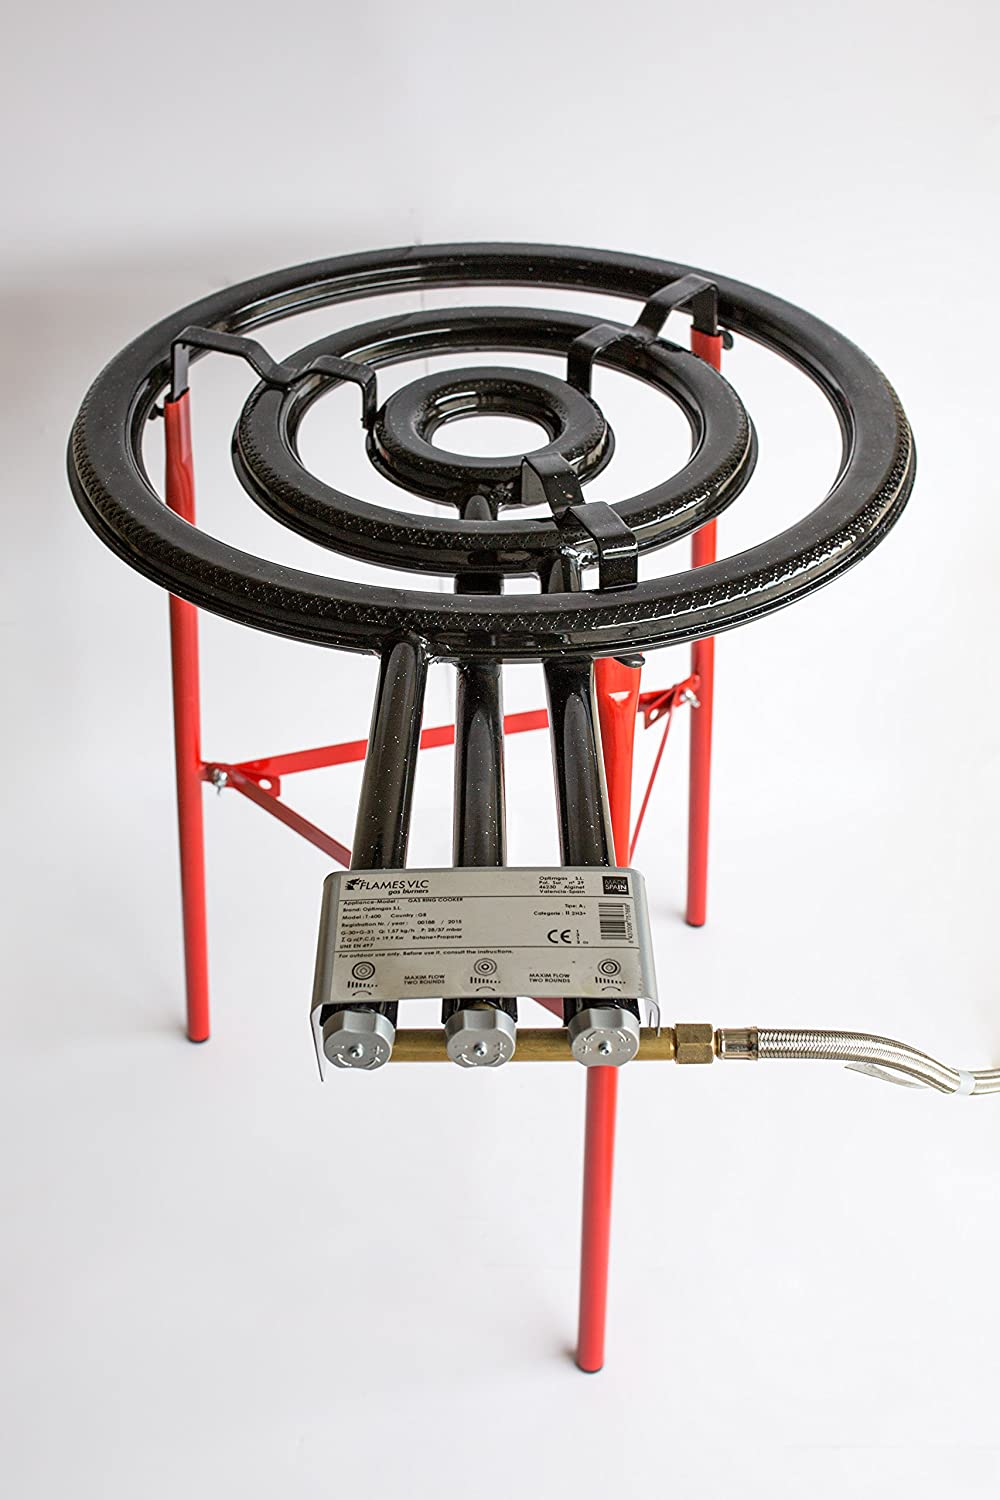 Paella Gas Burner and Stand Set Complete Paella Kit for up to 40 Servings Paella Pan Polished Steel